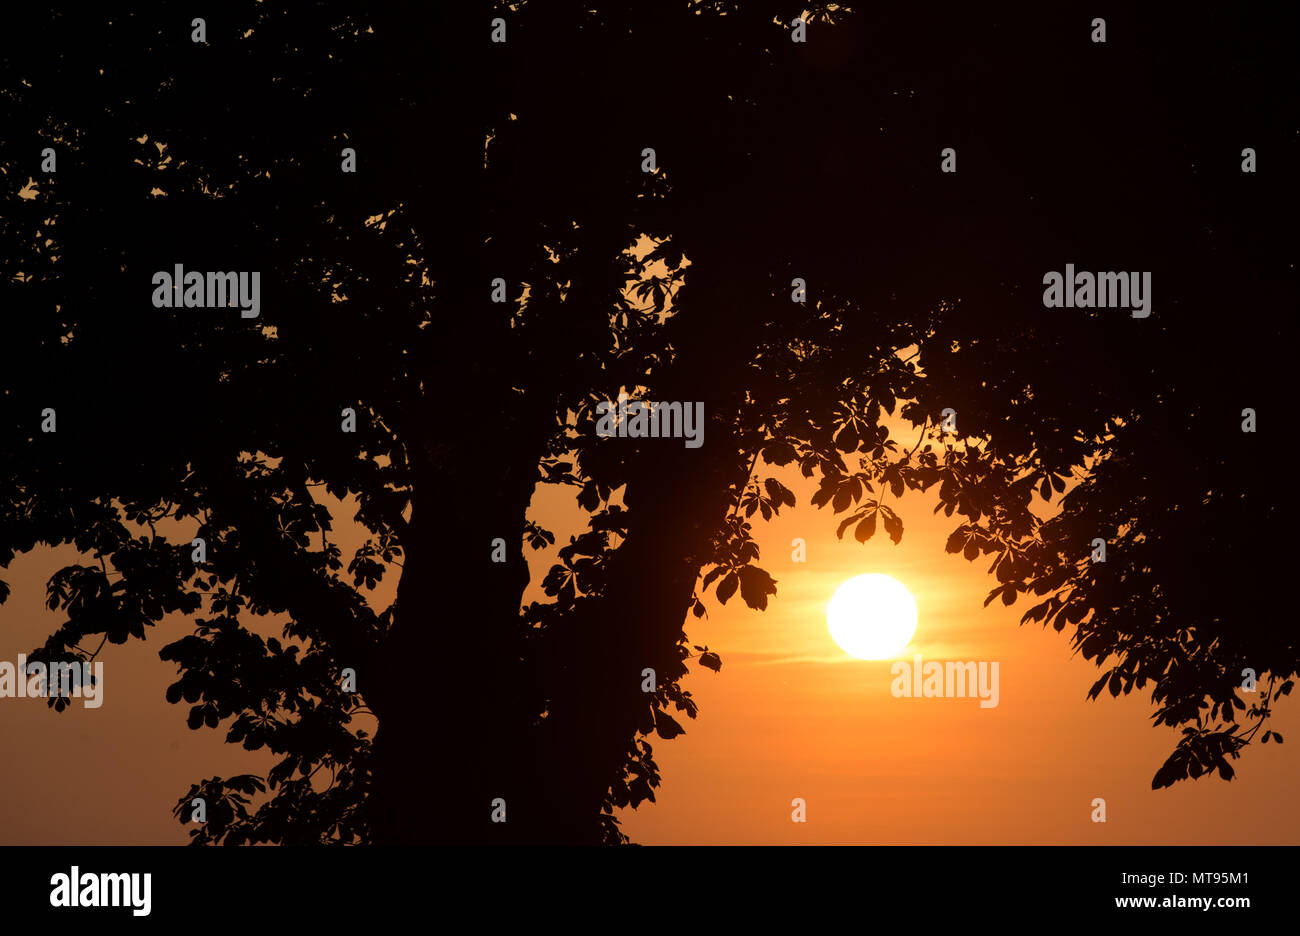 29 May 2018, Germany, Rehda-Wiedenbrueck: The sun rises in front of a treetop. Photo: Friso Gentsch/dpa - Stock Image